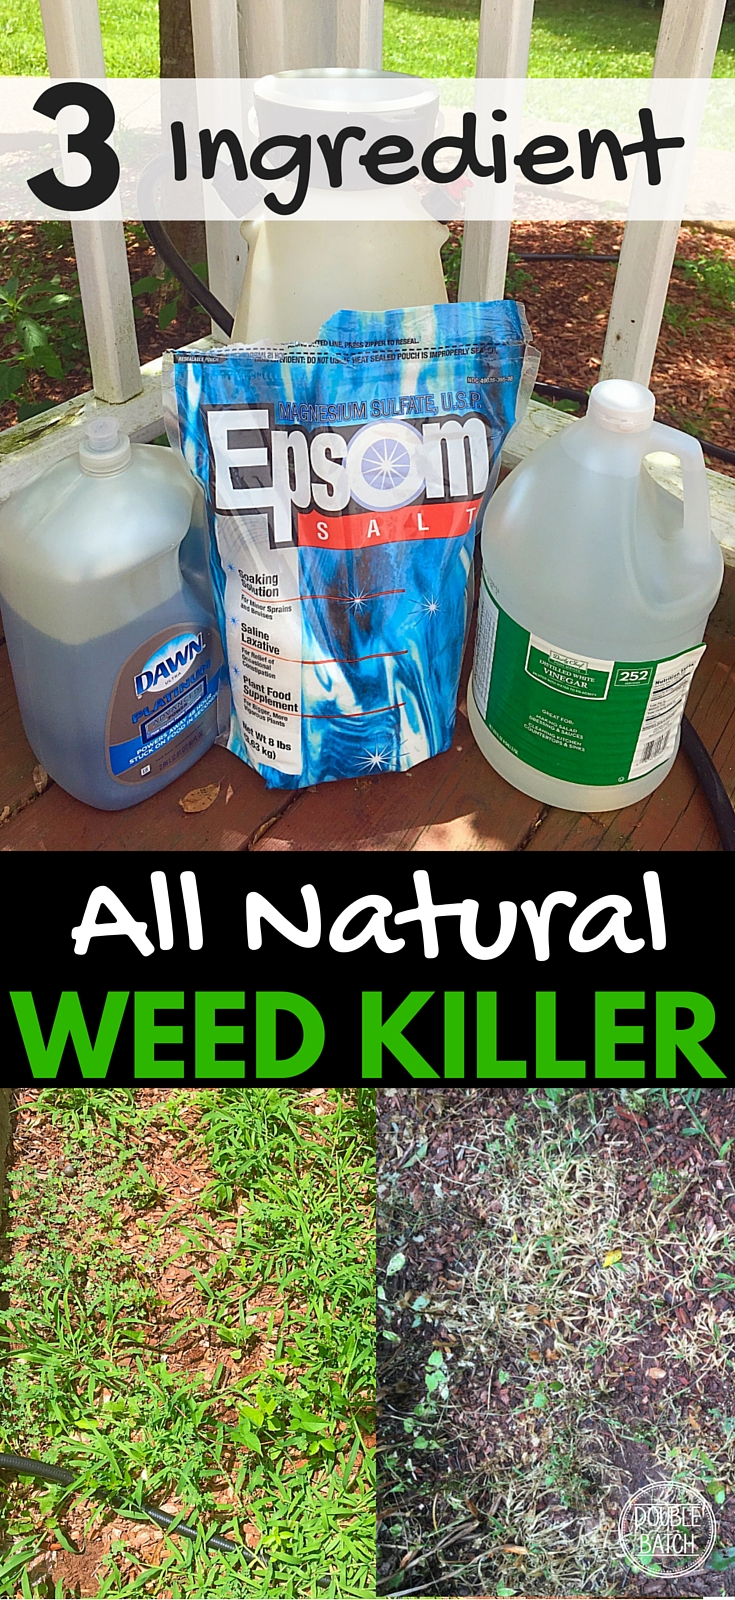 3 Ingredient Natural Weed Killer